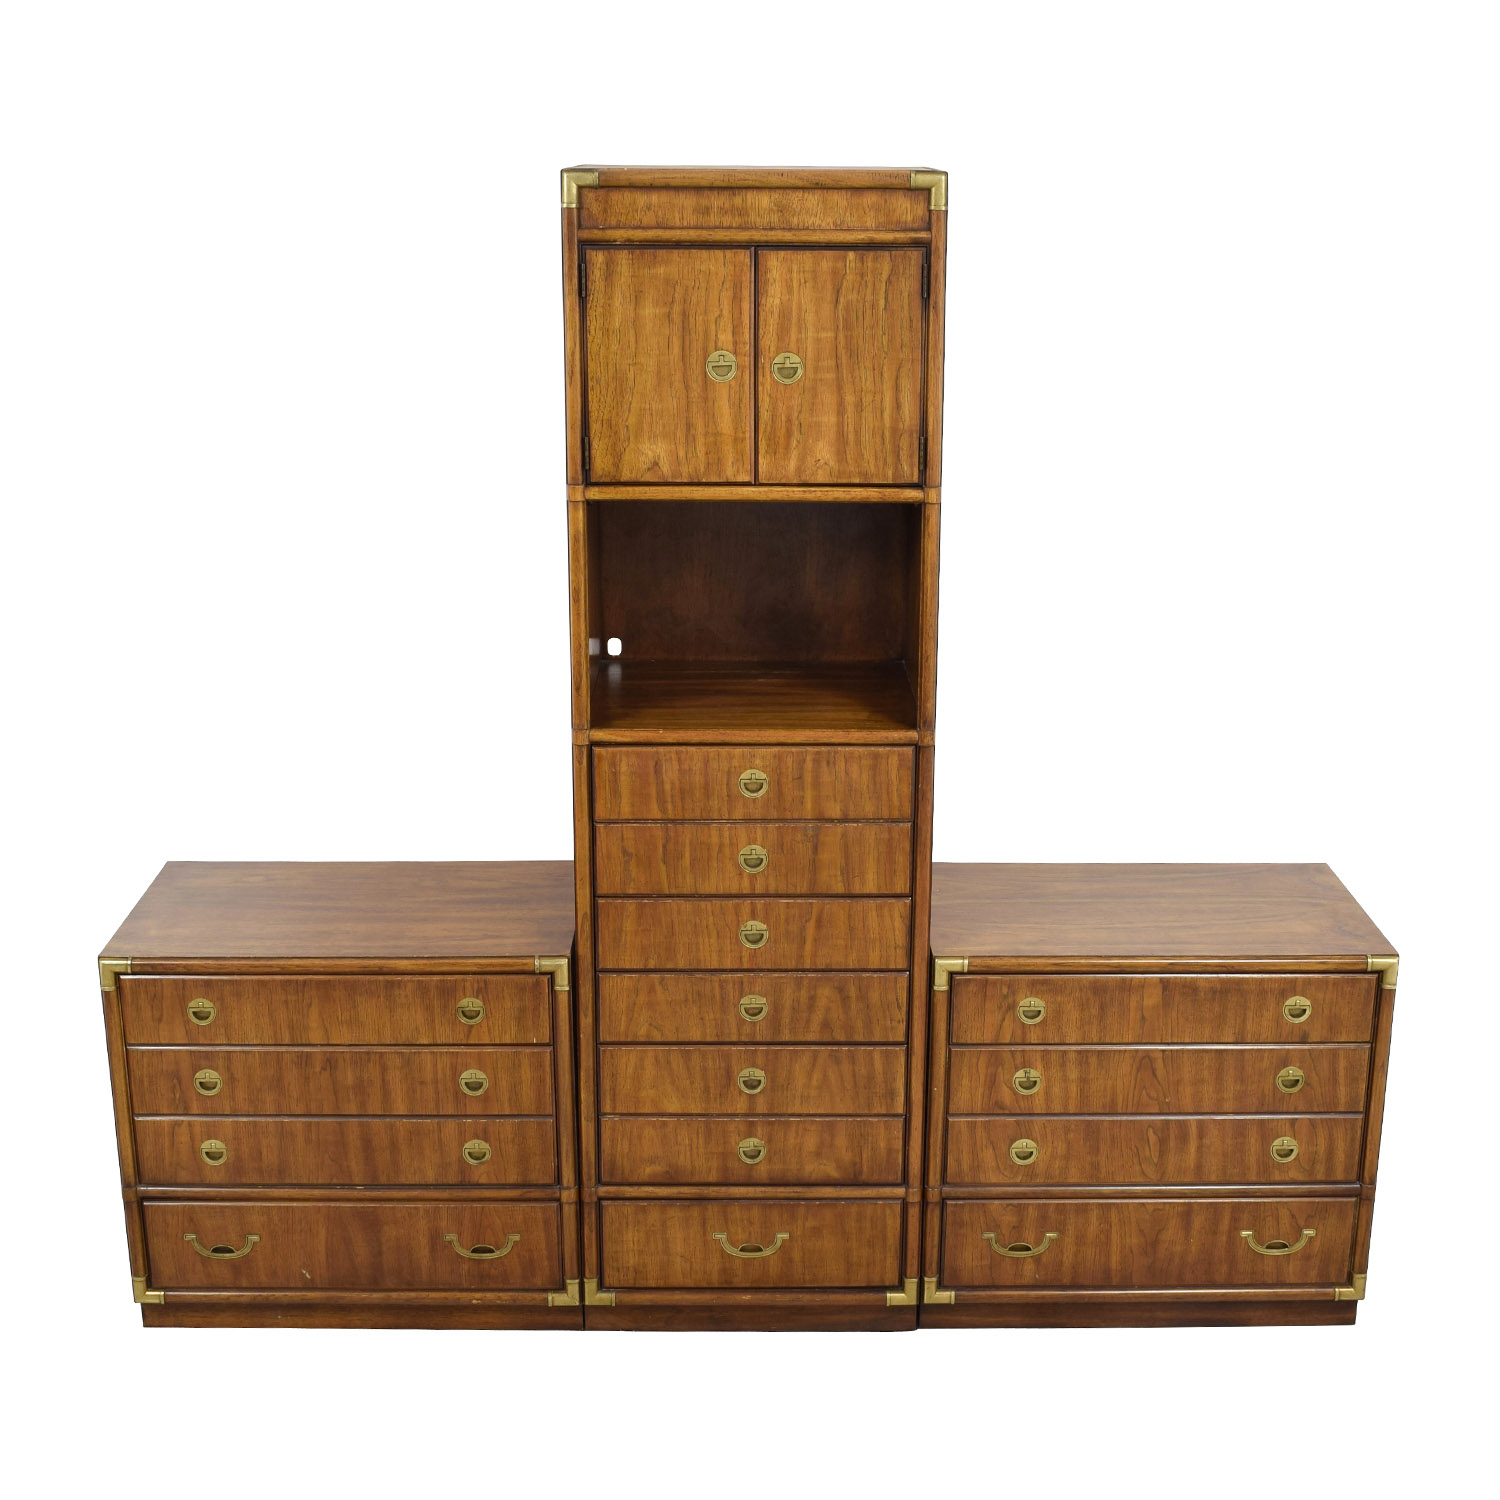 Drexel Drexel Three Piece Dresser Cabinet Set used